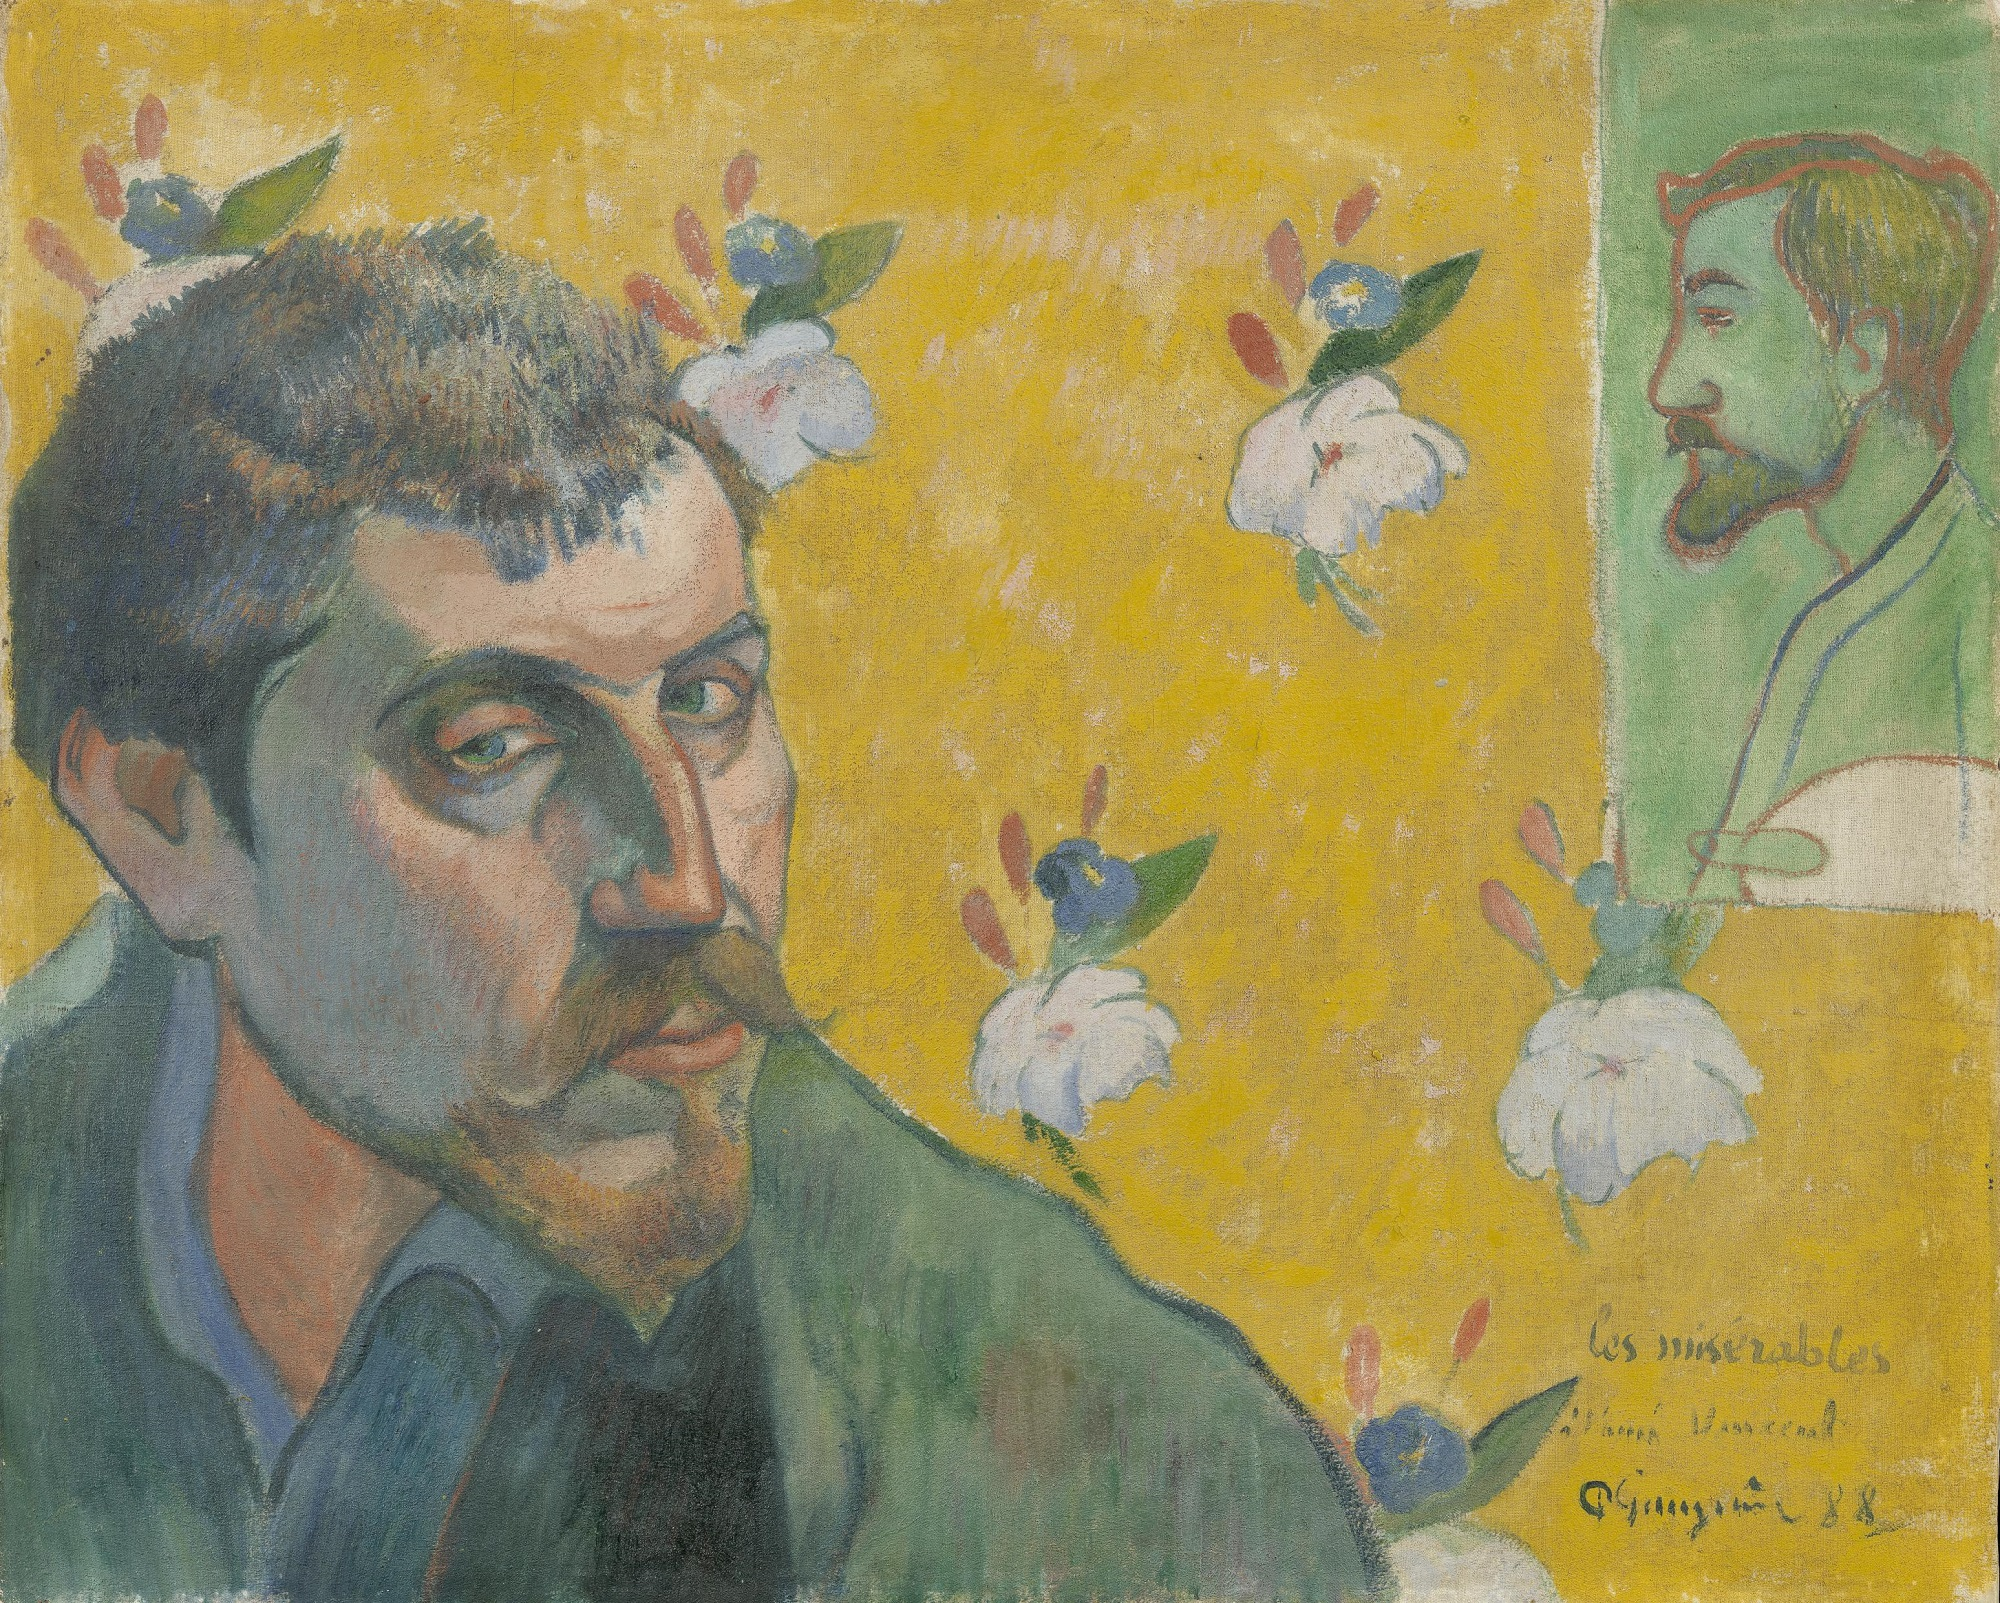 Paul Gauguin - Self-Portrait Dedicated to Vincent van Gogh. Les Miserables 1888